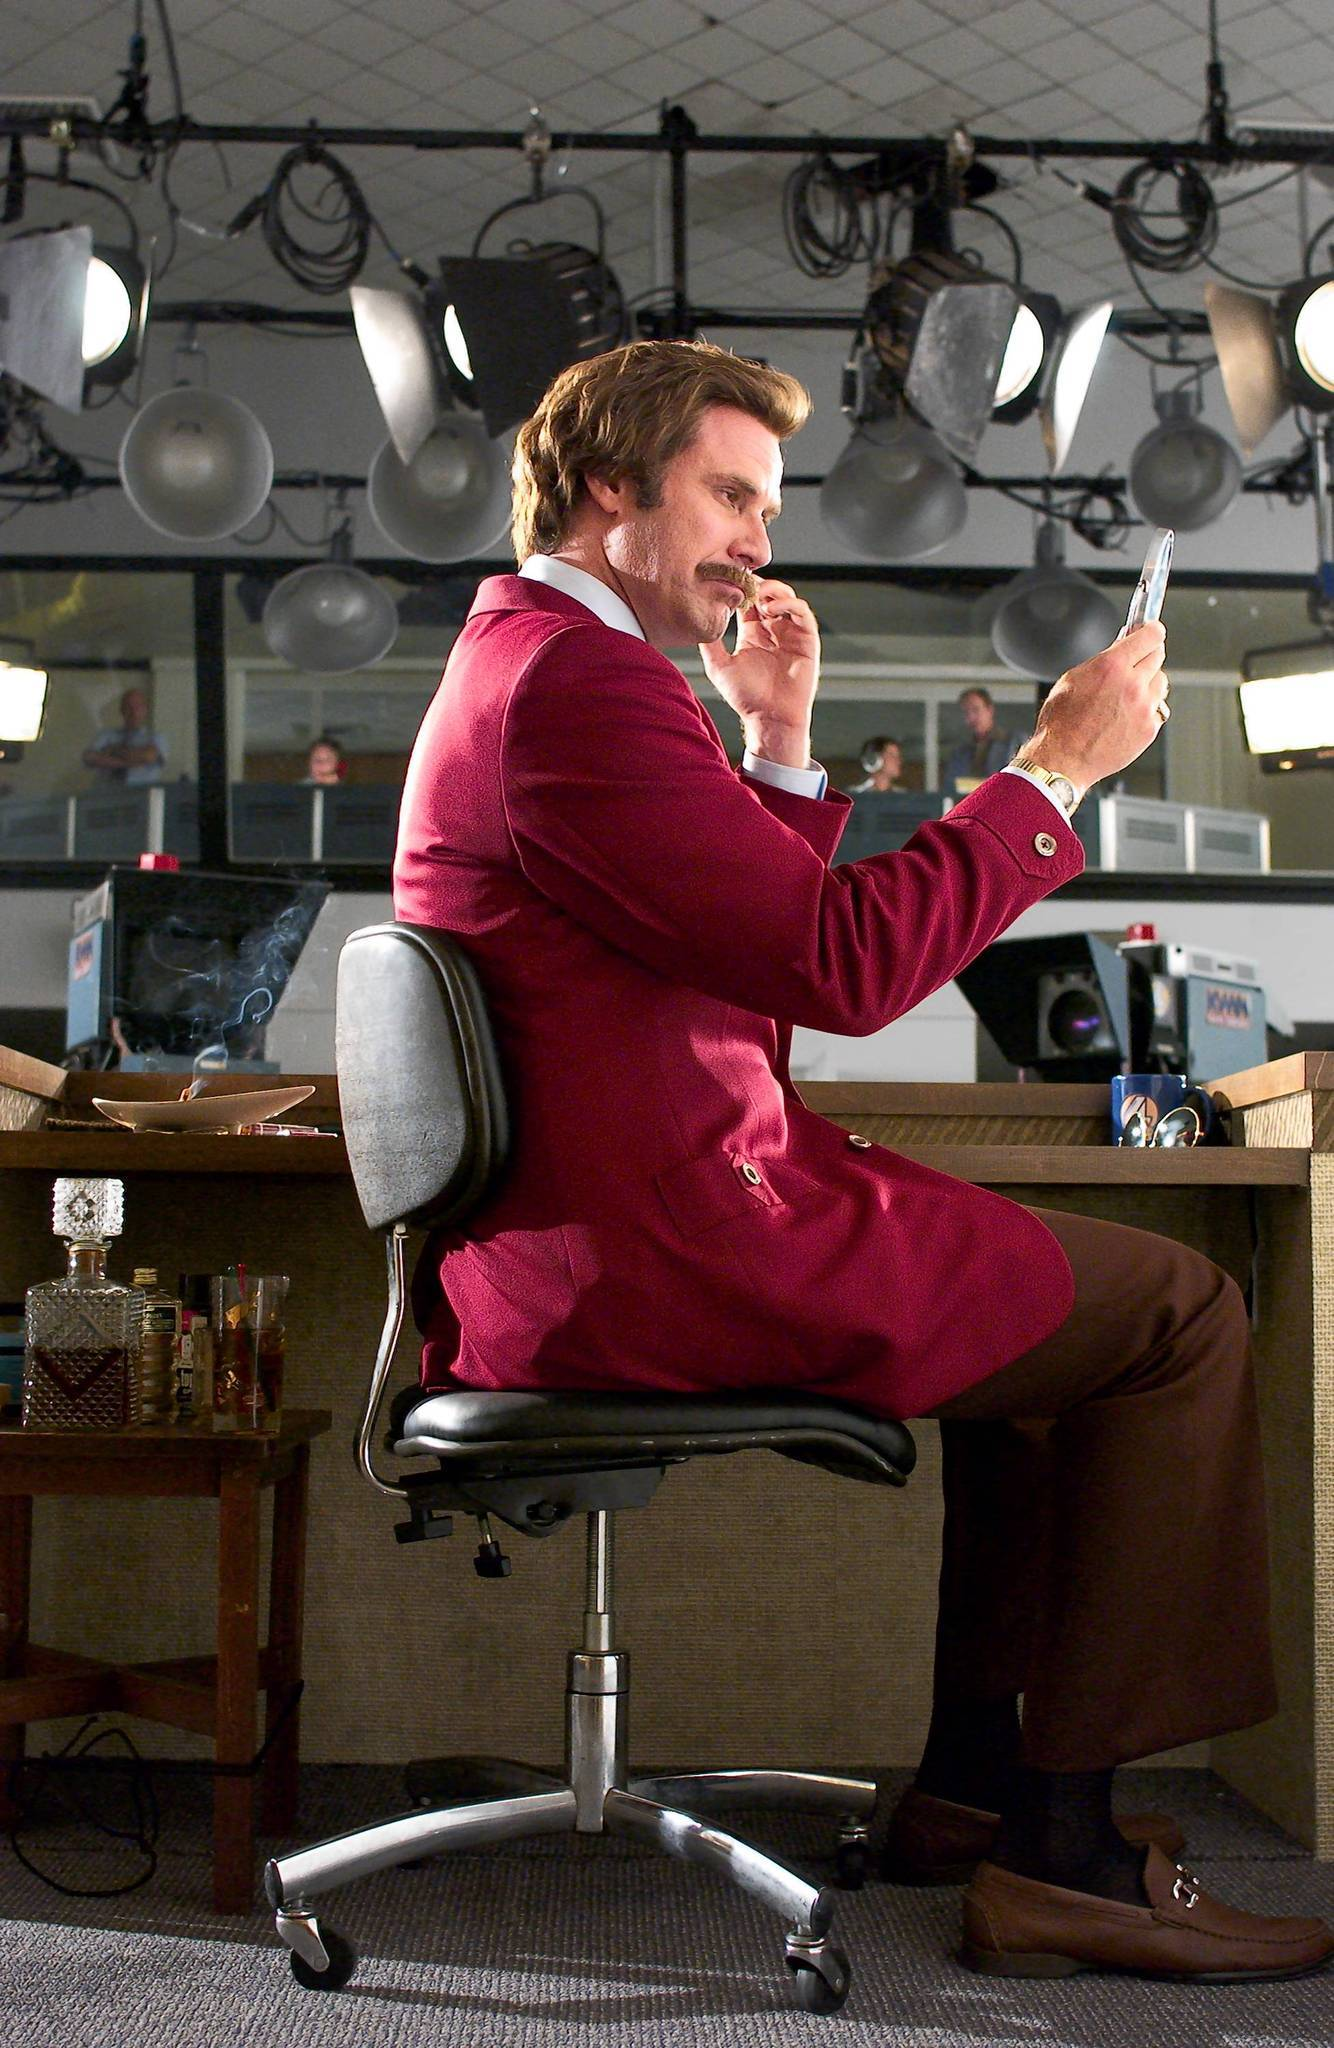 Ron Burgundy (WILL FERRELL) gives himself some last-minute touch-ups before going on air in DreamWorks Pictures comedy ANCHORMAN: THE LEGEND OF RON BURGUNDY.